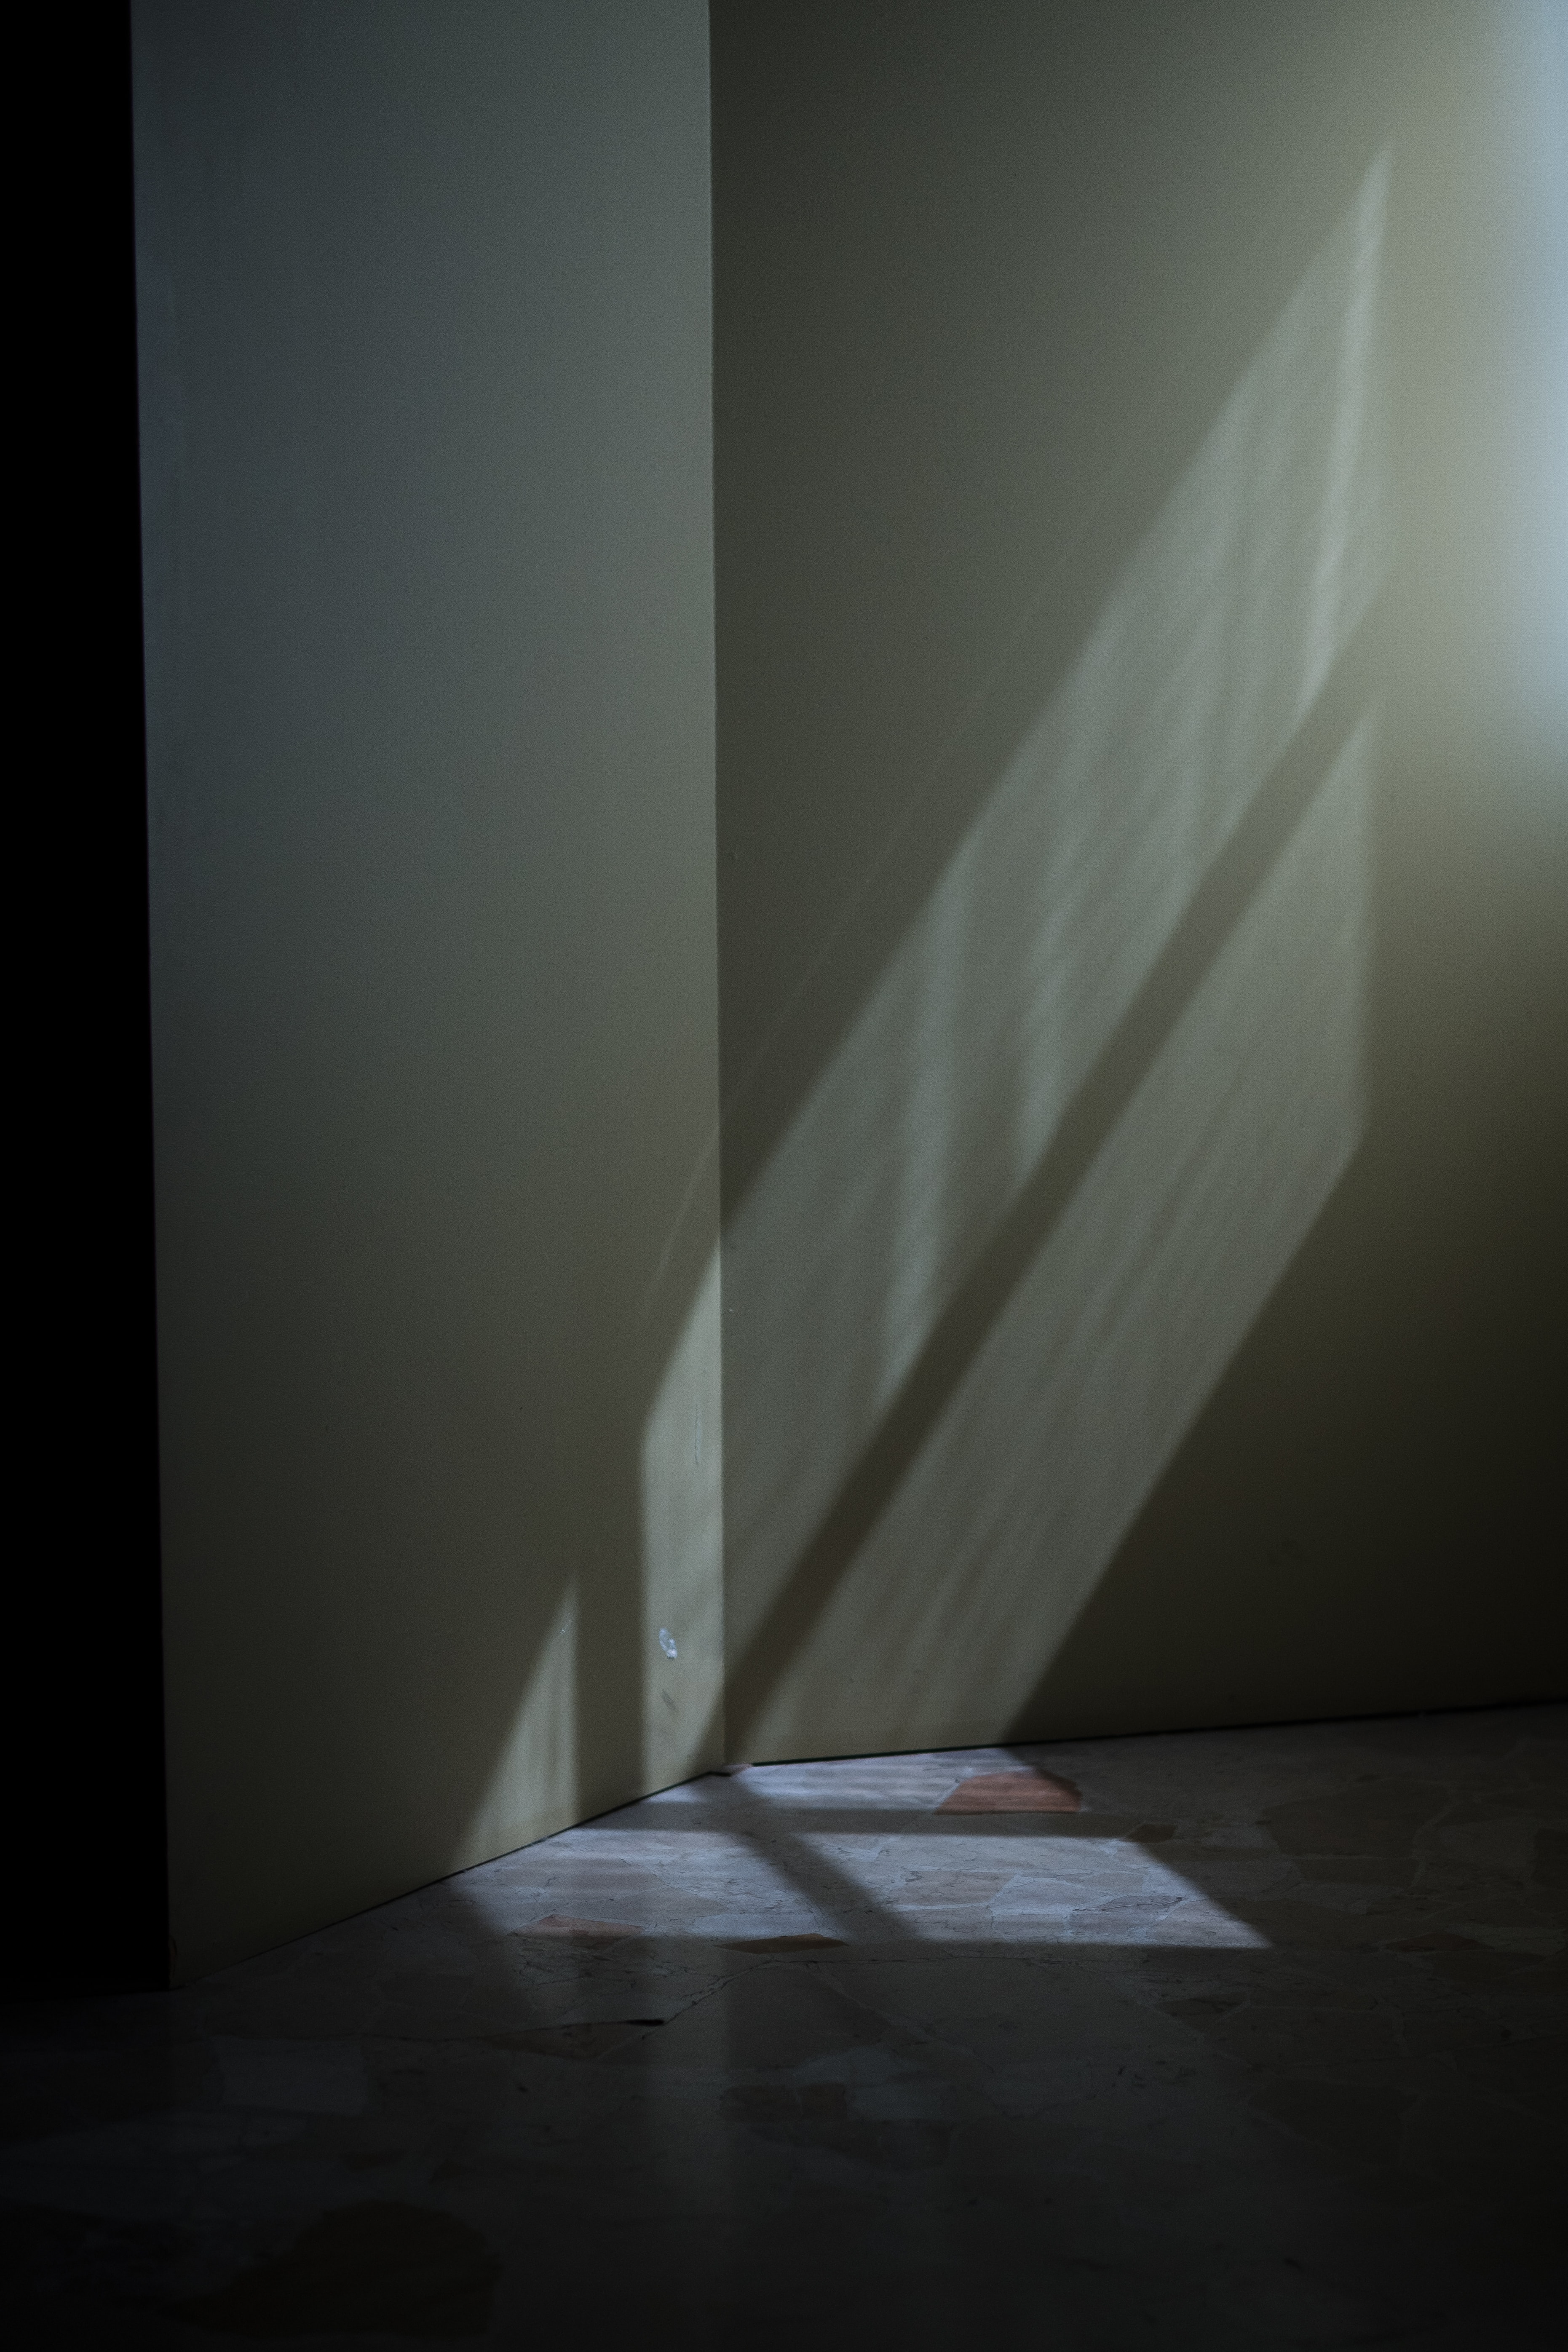 Shadows on a wall from light coming through a window.